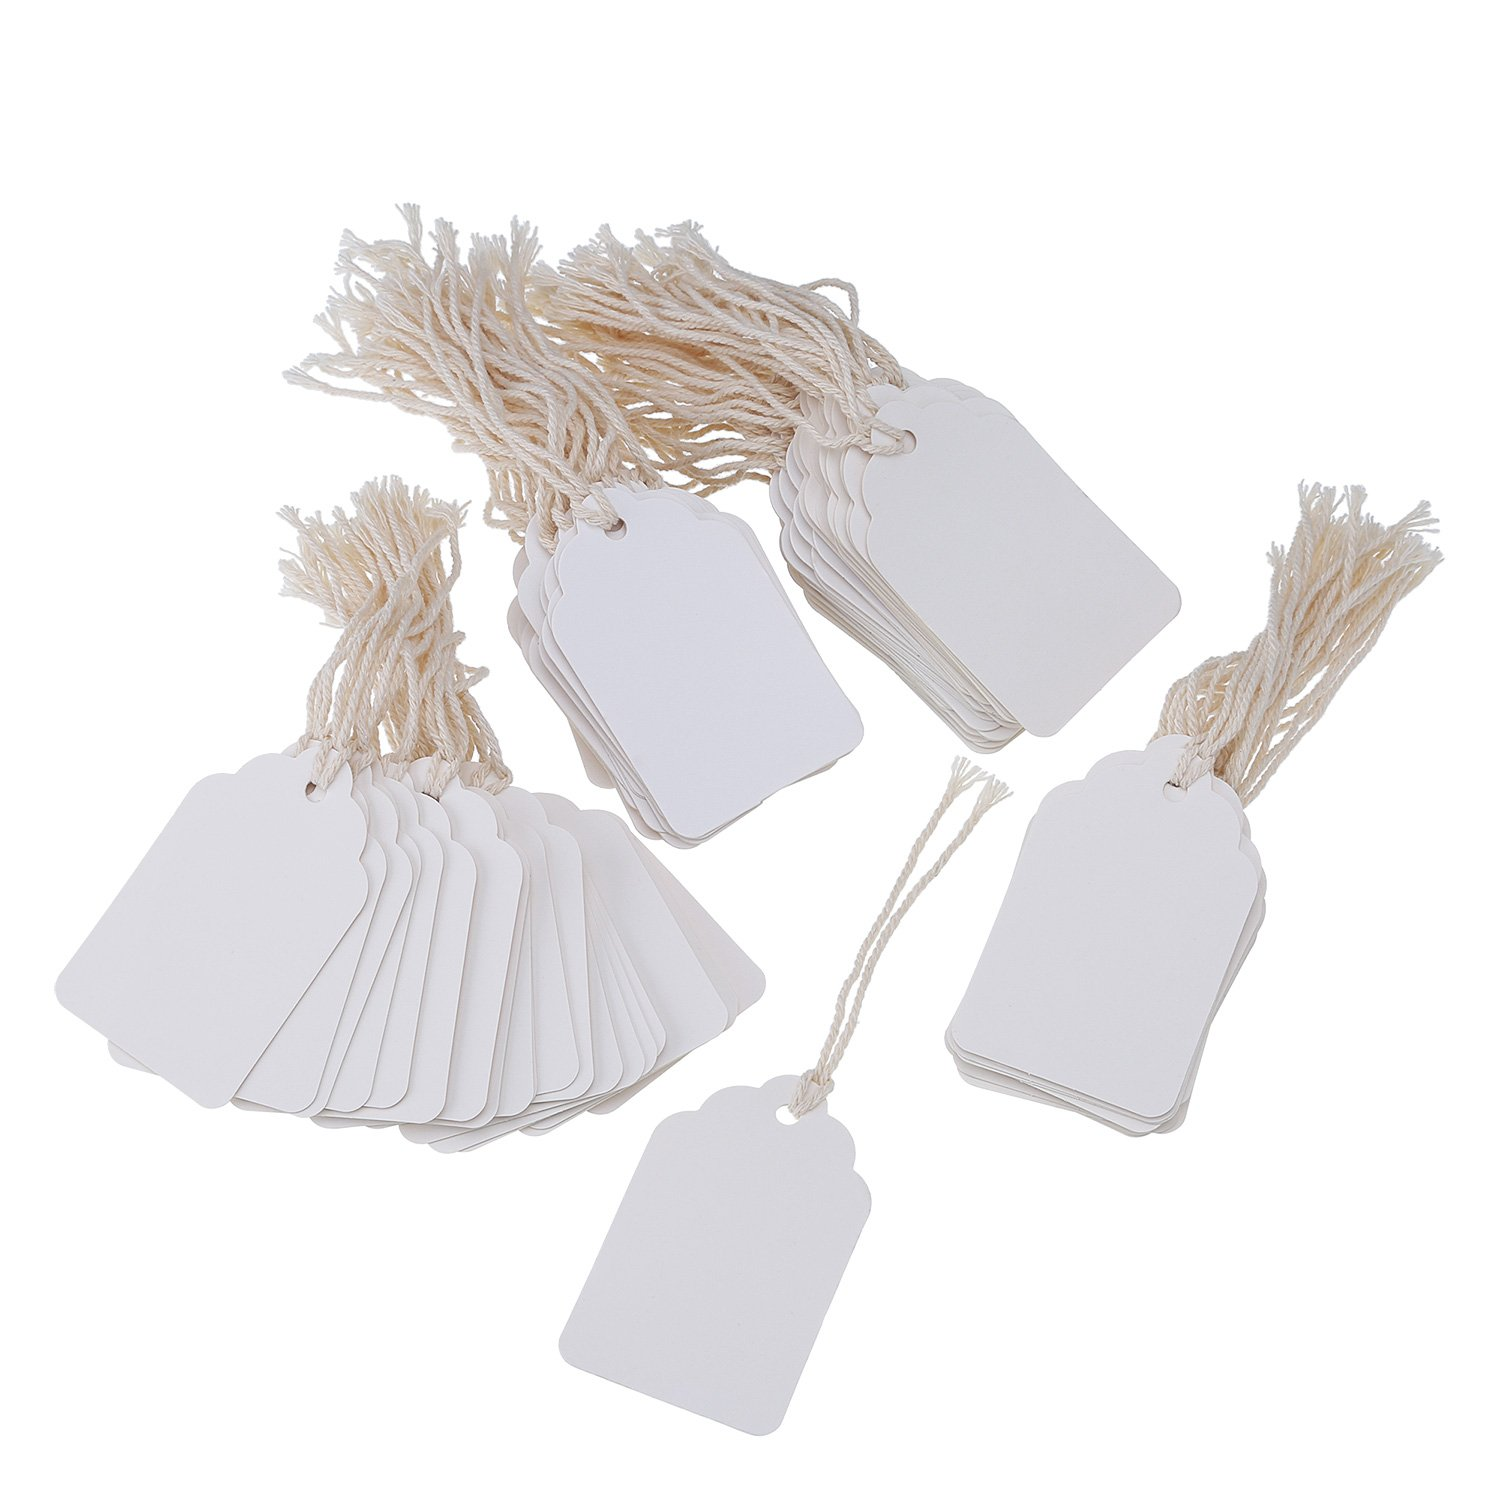 Khaki 200 Pack Pangda White Paper Gift Tags Marking Tags Price Tags Price Labels Display Tags with Hanging String 44 by 70 mm